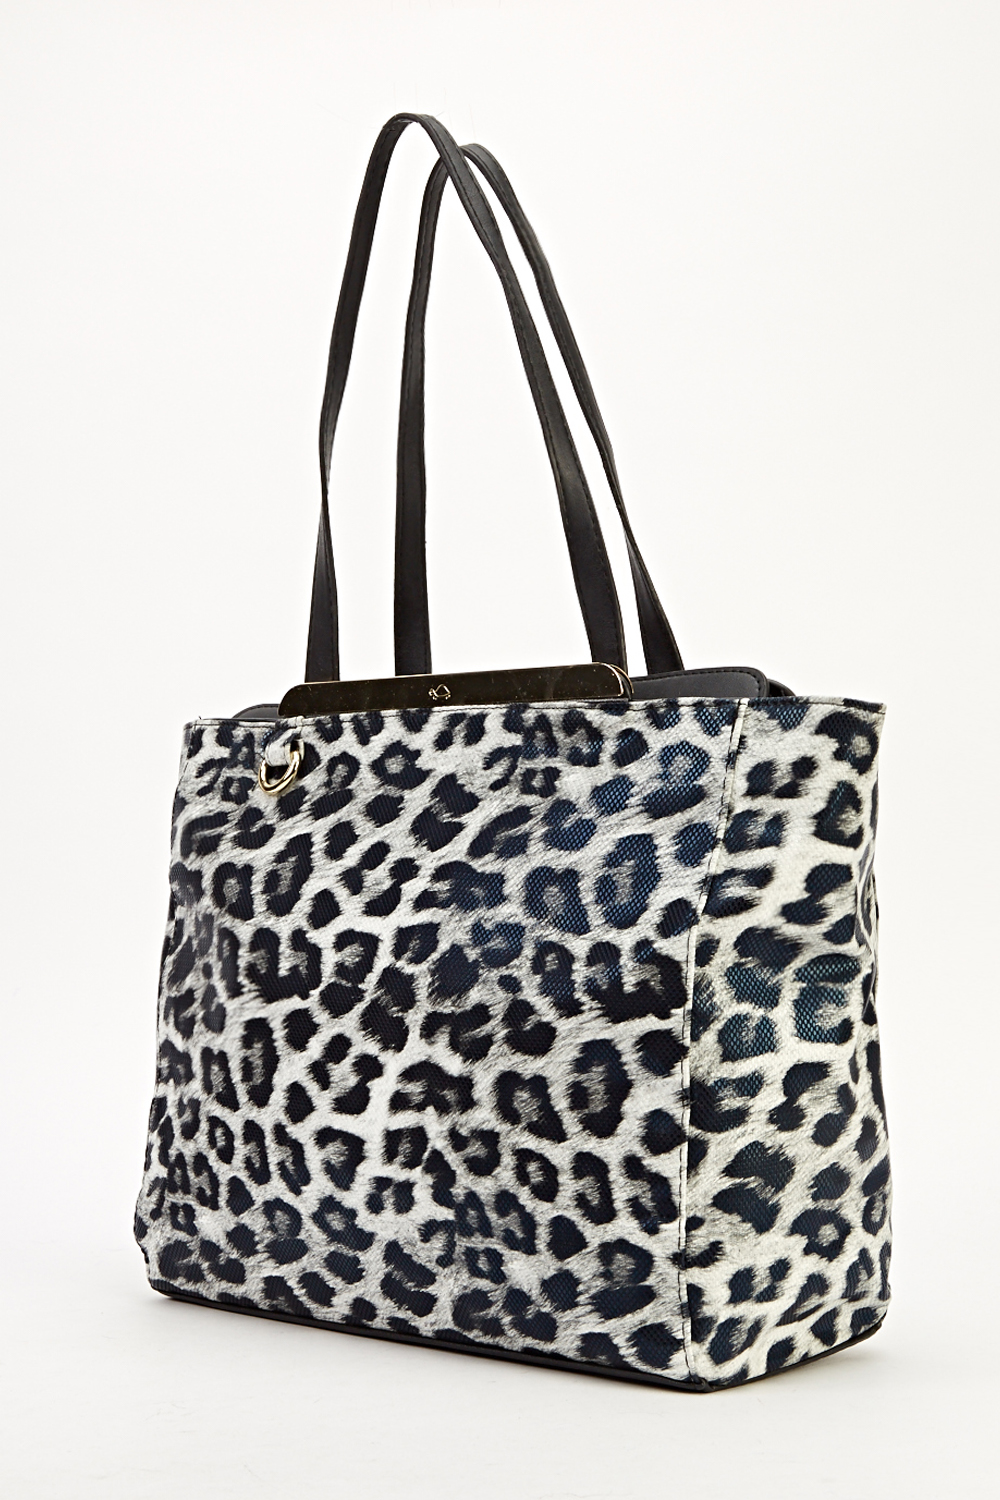 Animal Print Holographic Tote Bag Just 163 5